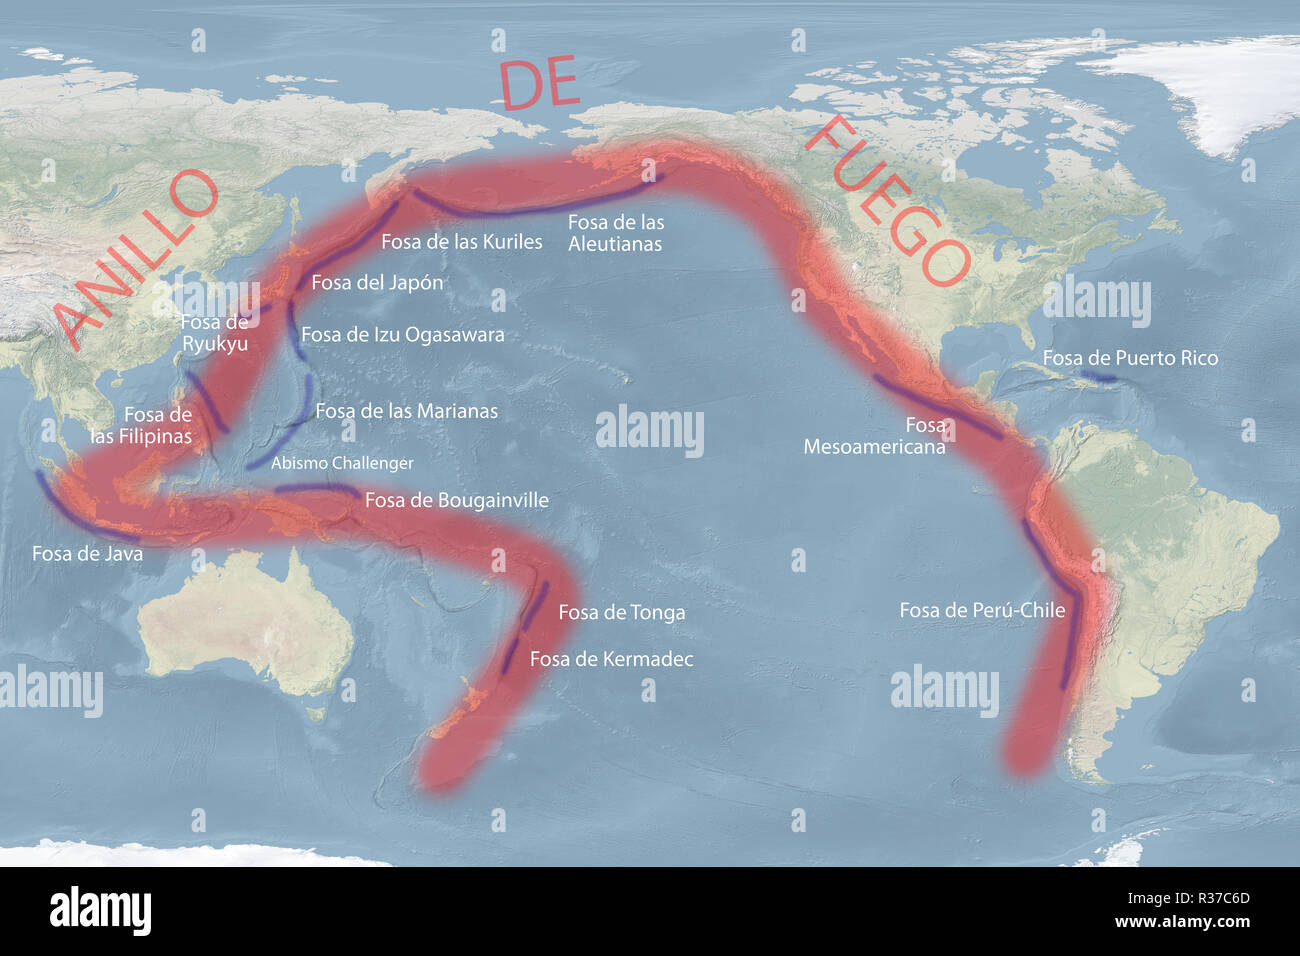 Pacific 'Ring of Fire' map (Spanish-version) with trenches (image for illustrative purposes only) - Stock Image